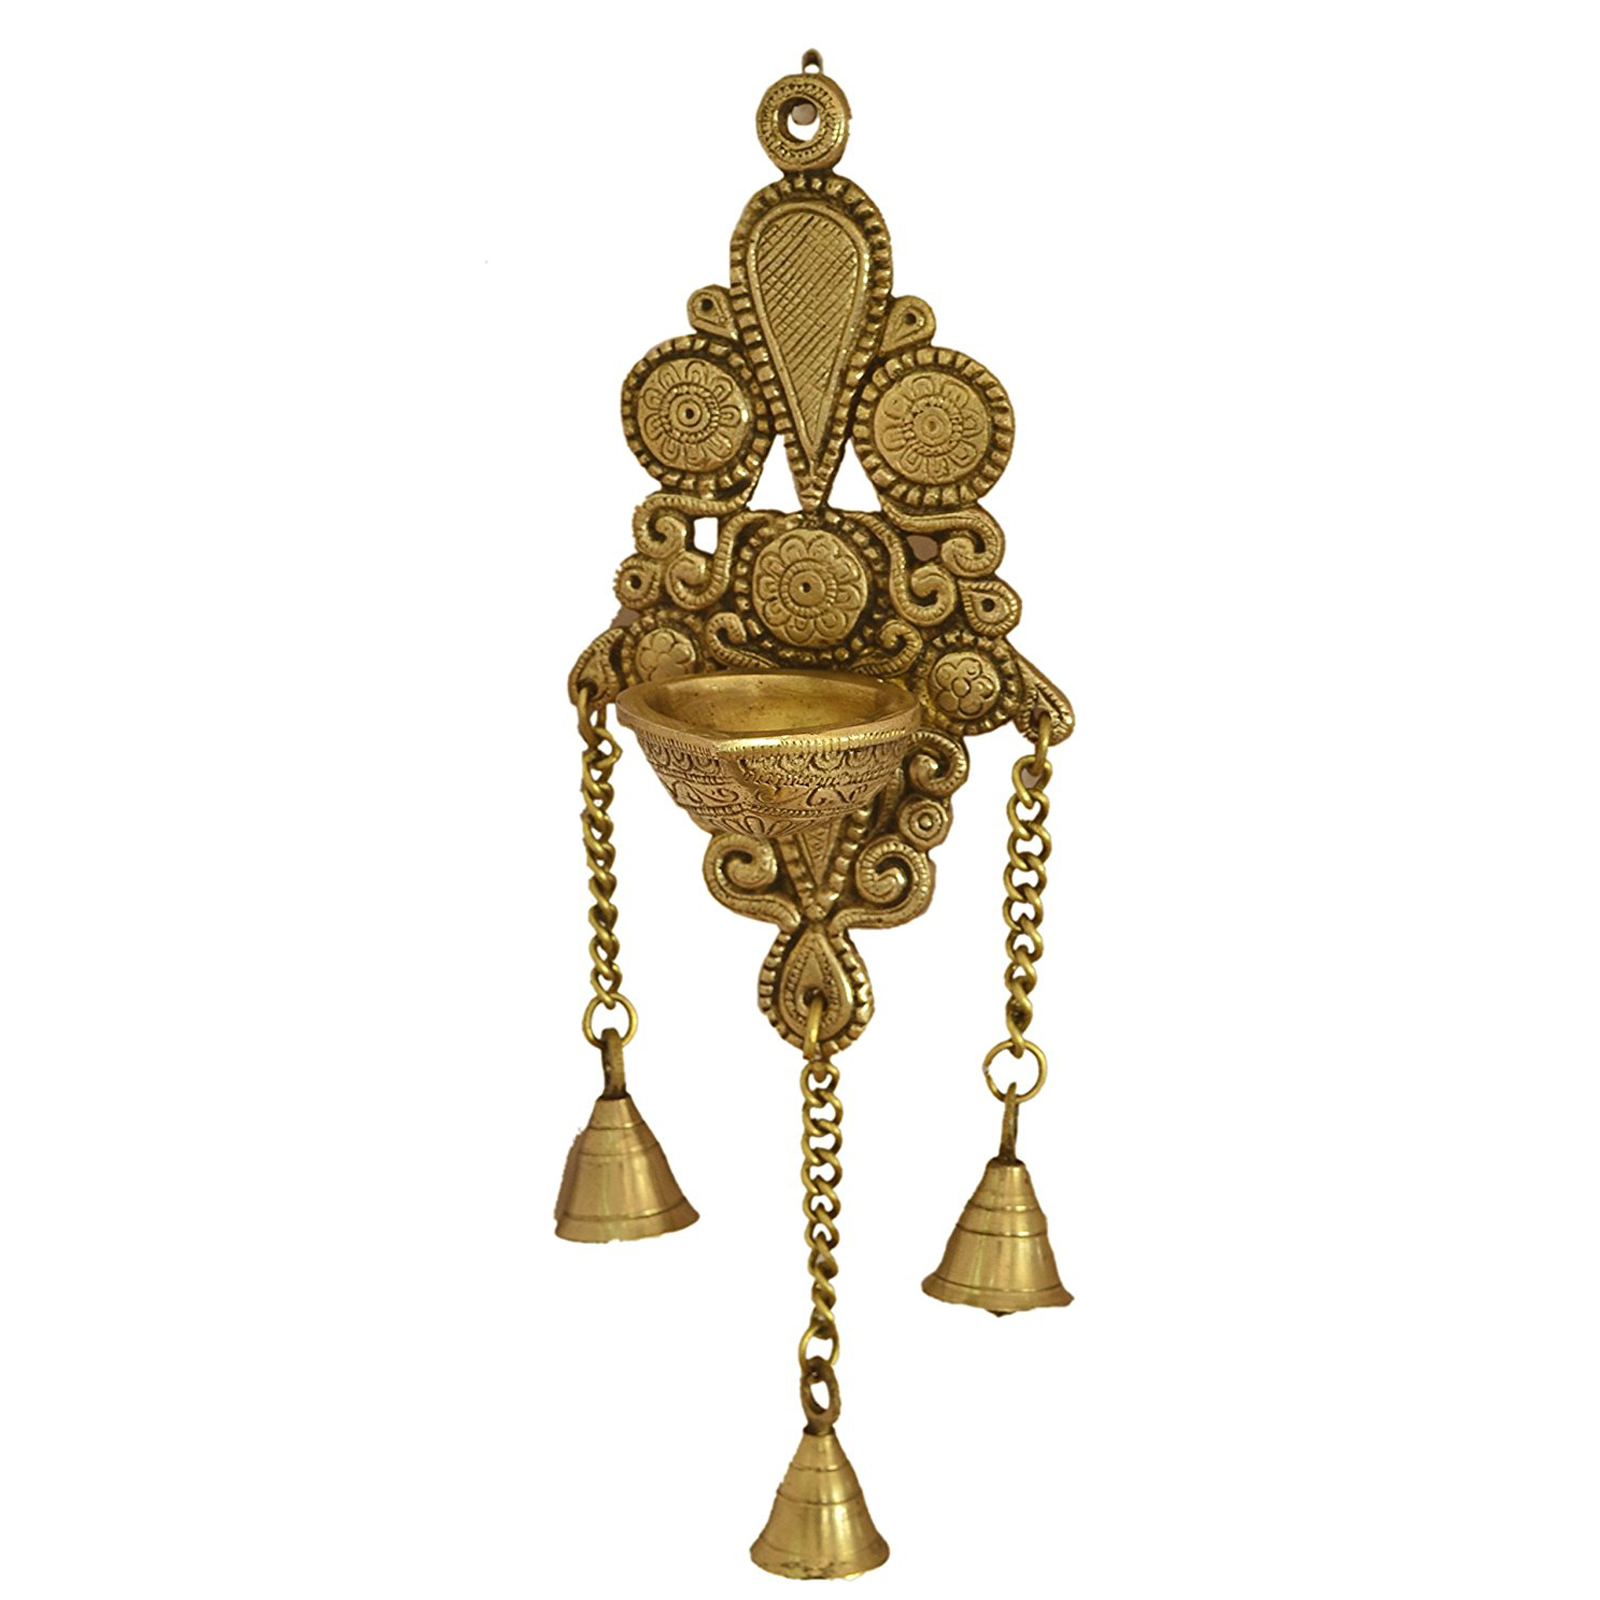 Aakrati Wall Hanging Deepak Also As Candle Stand With Bells